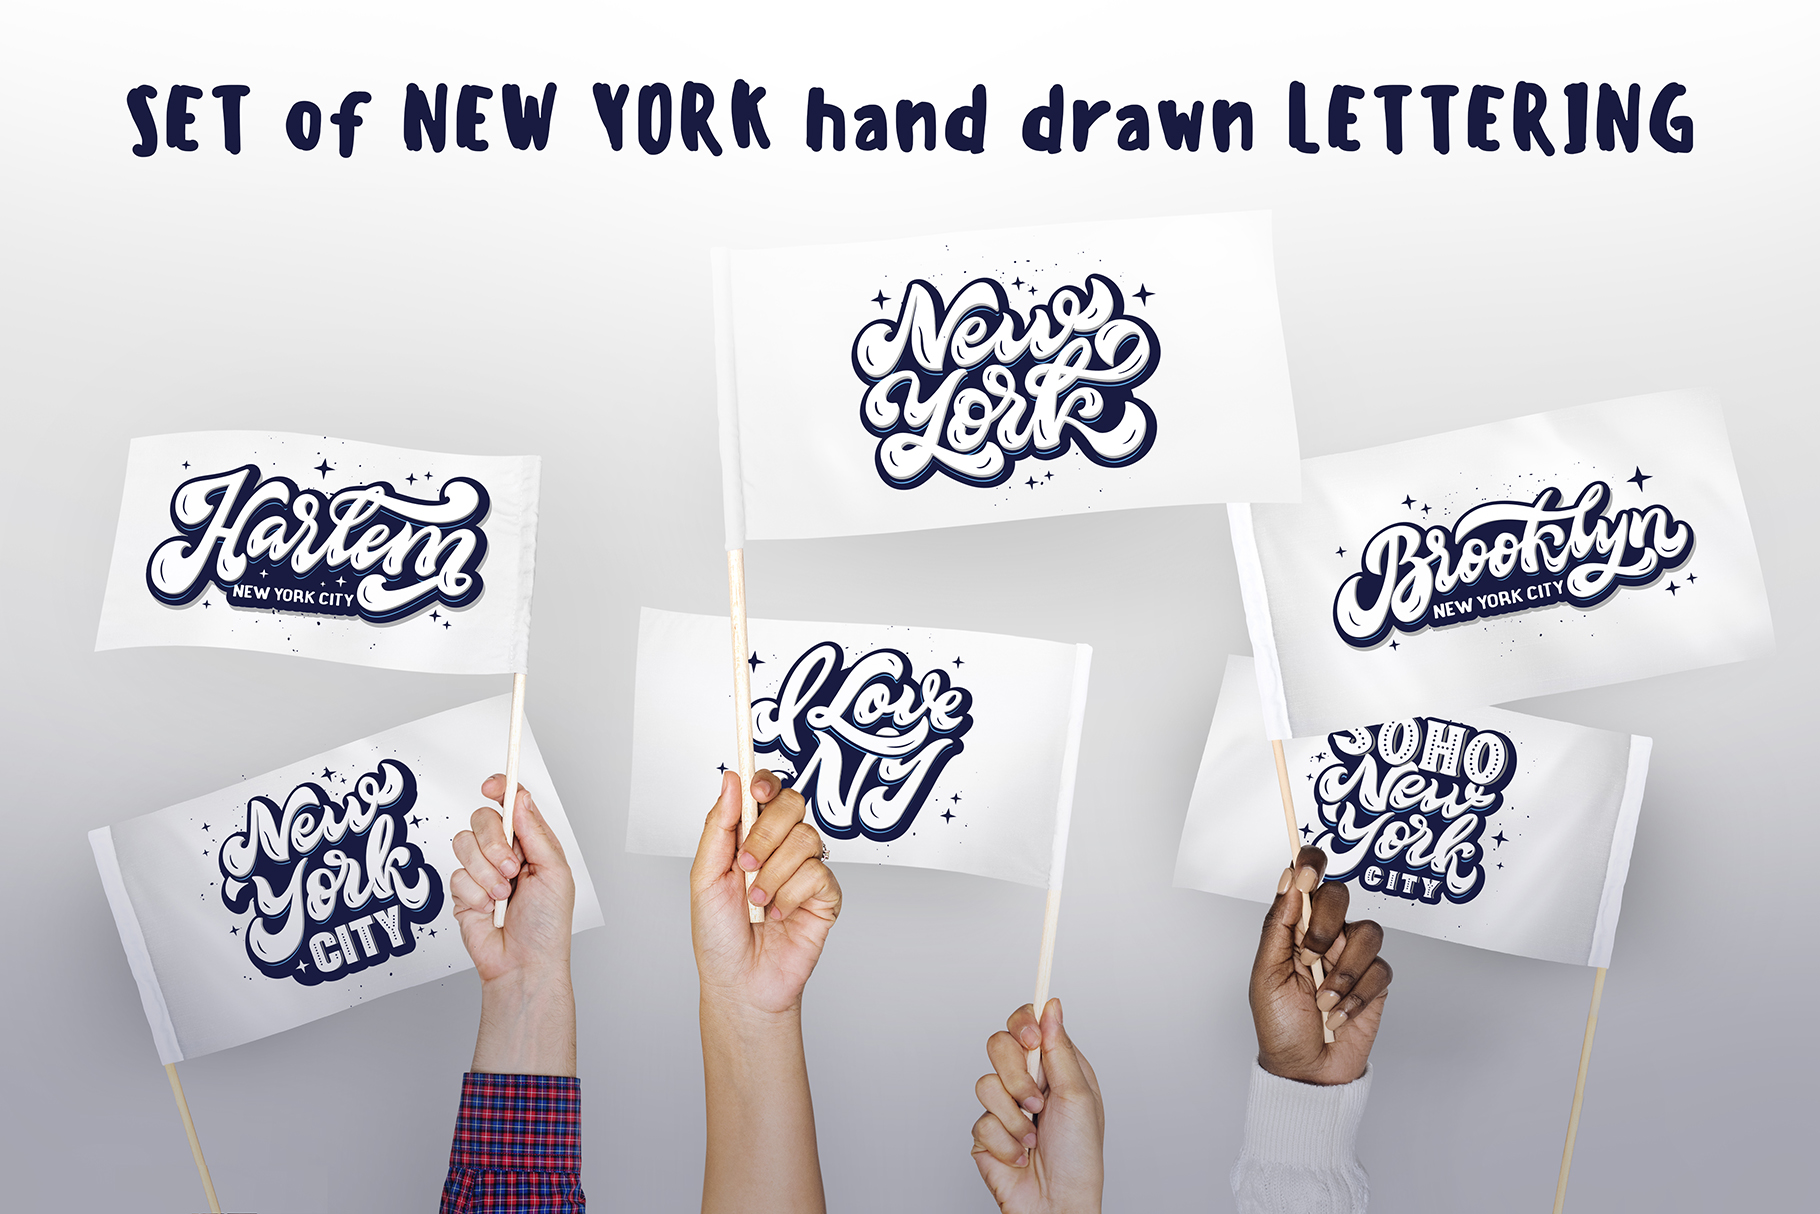 Set of New York hand drawn lettering example image 3